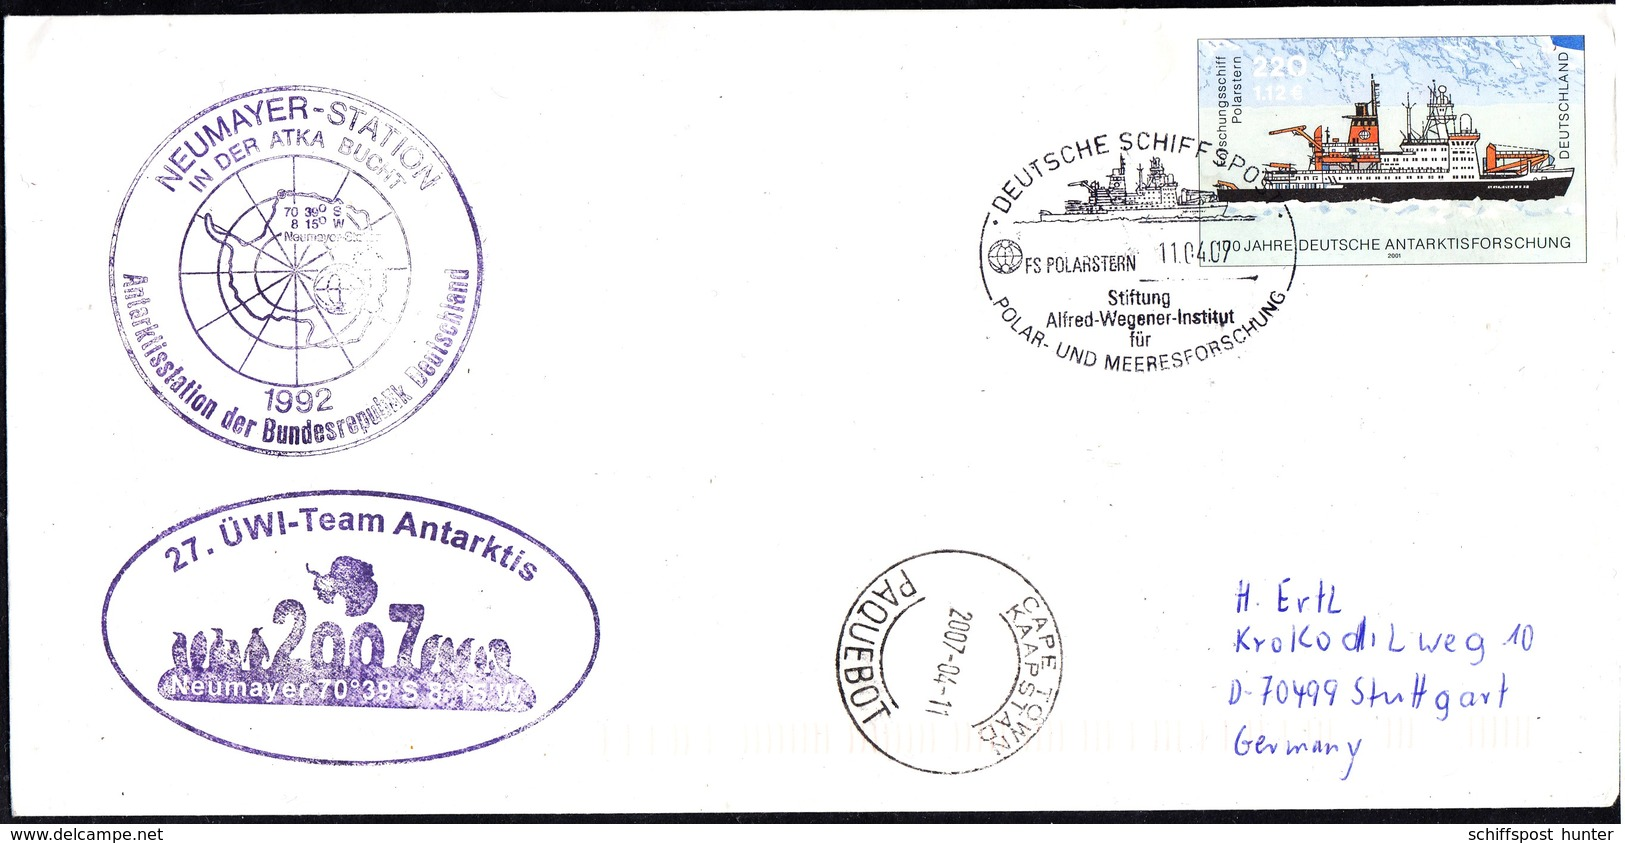 """ANTARCTIC,Germany,Plusbrief !! FS""""POLARSTERN"""",2 Cachets,27.ÜWI,look Scan !! 26.3-40 - Stamps"""